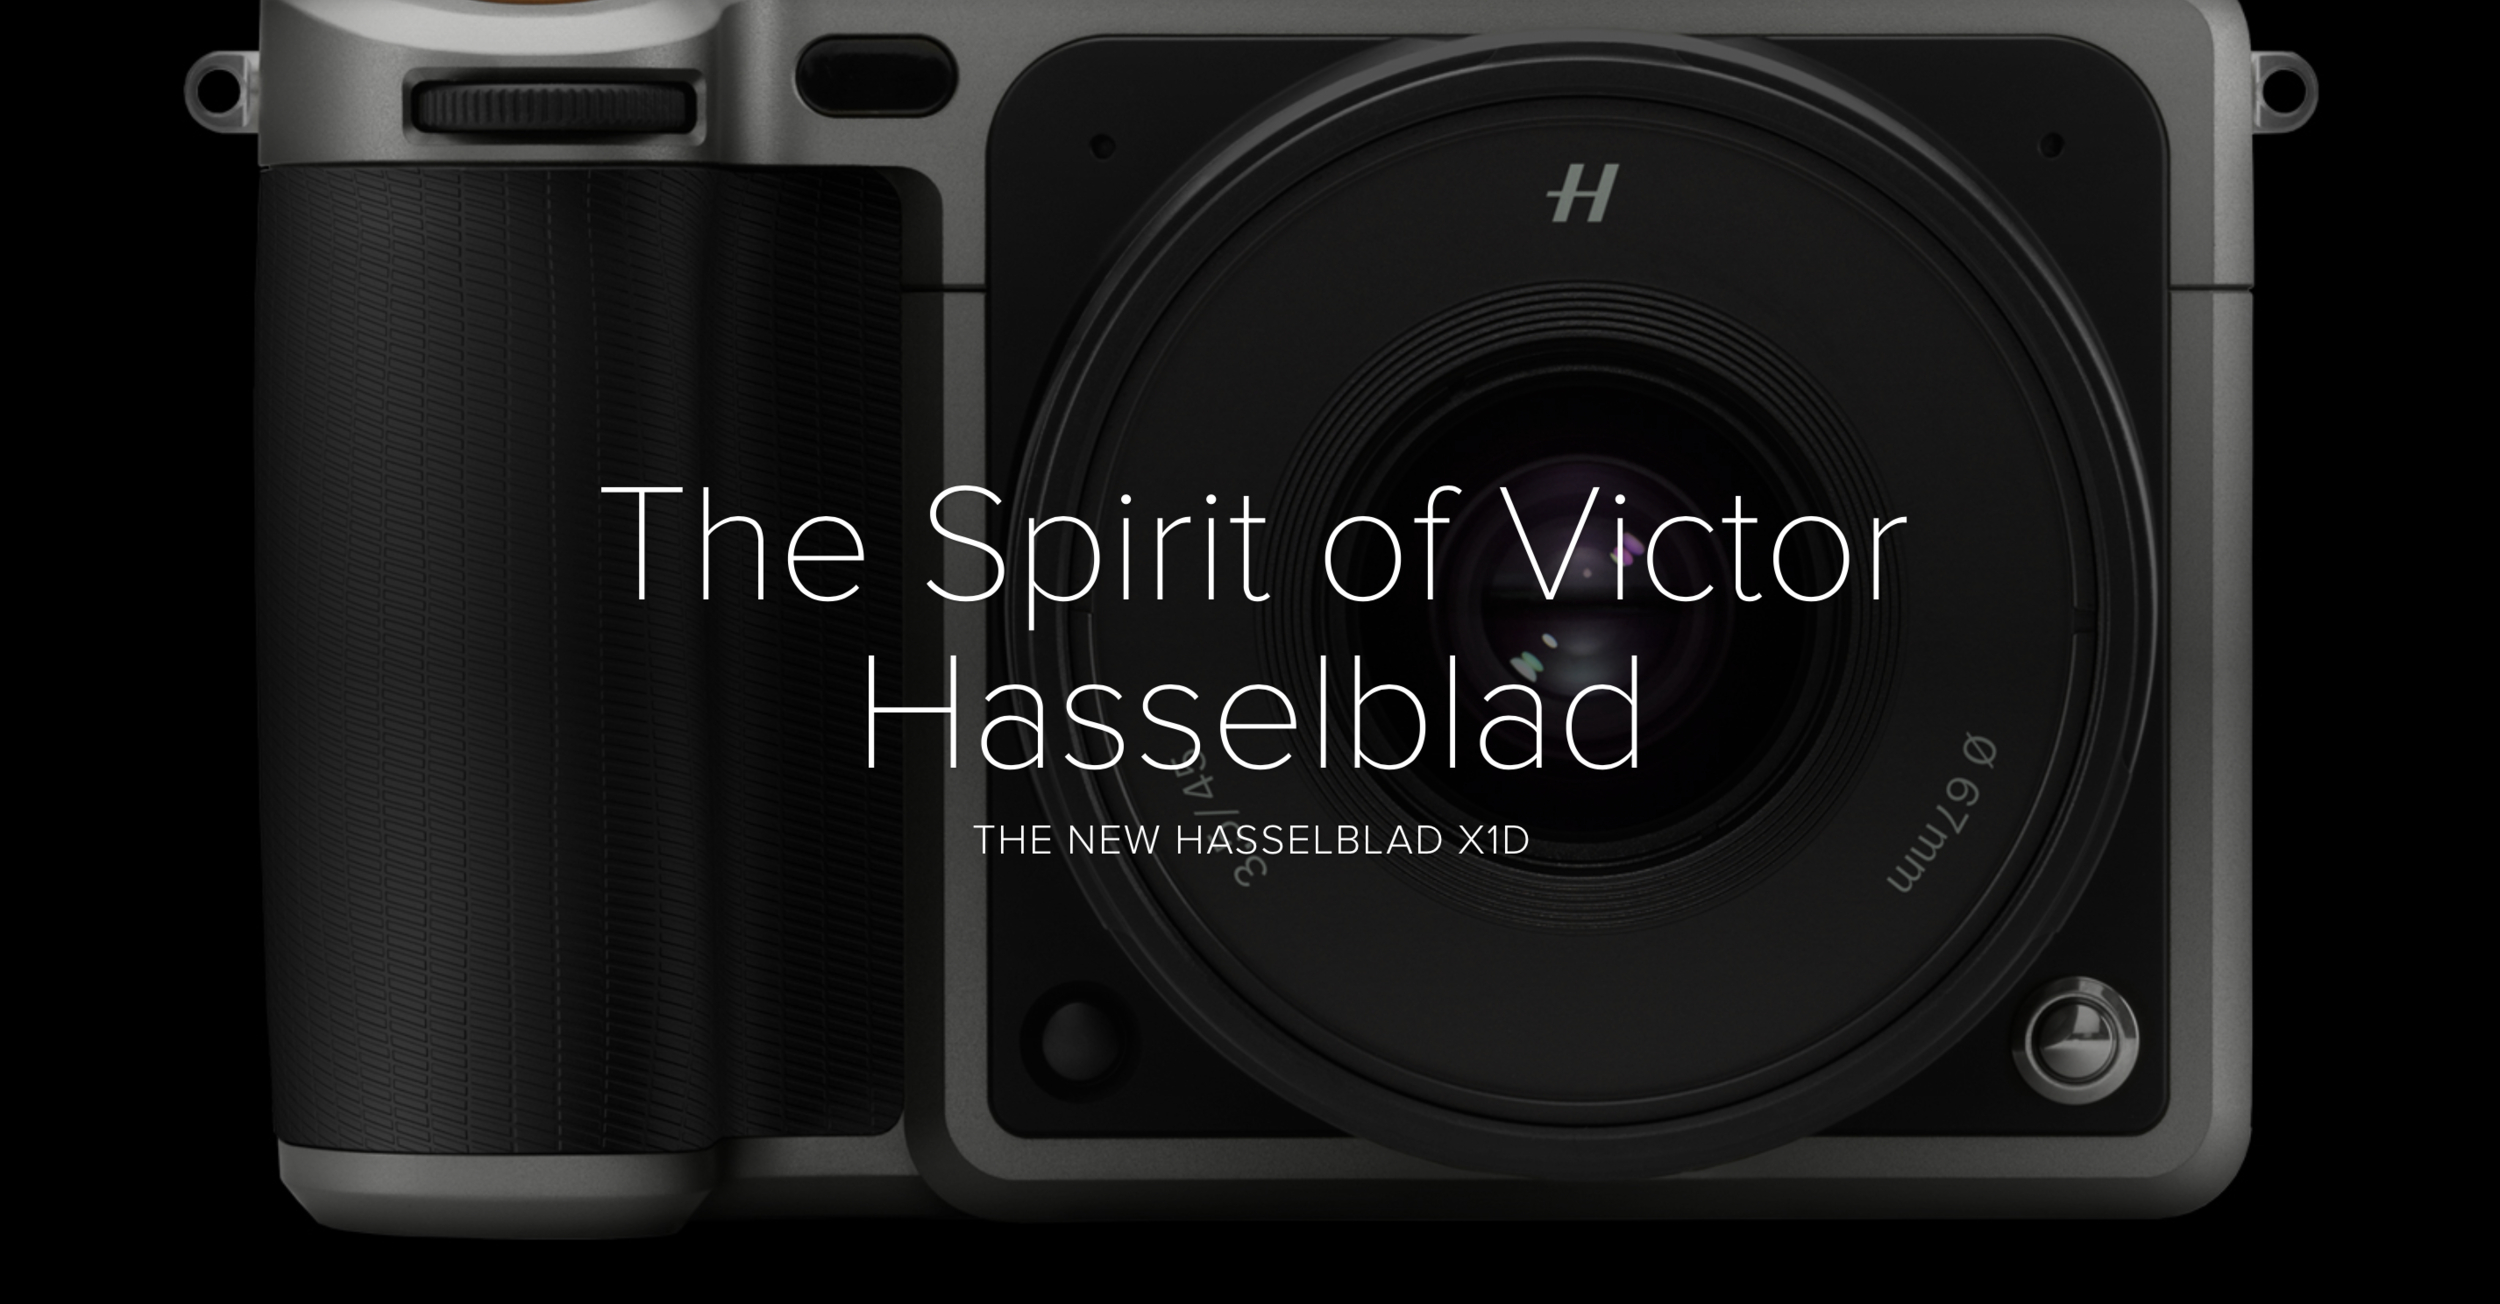 HASSELBLAD X1D - The Spirit of Victor Hasselblad